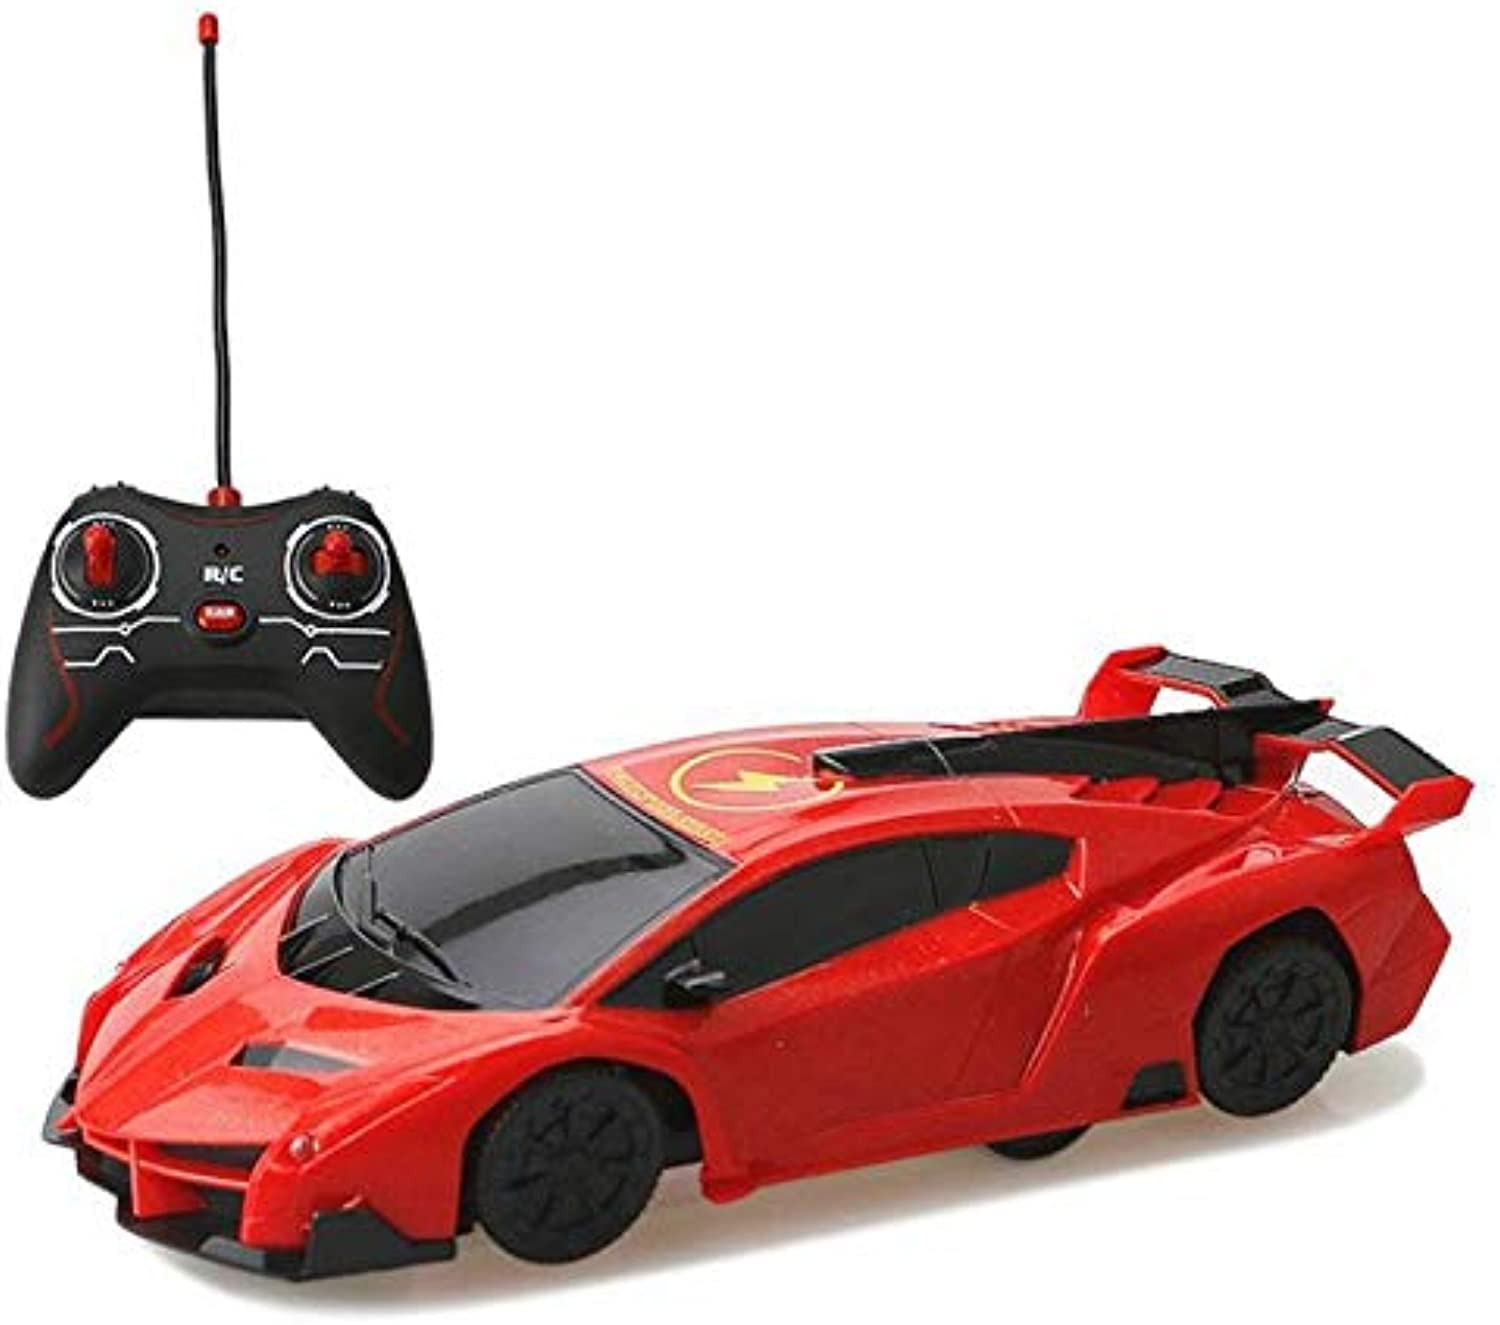 Generic Toy Remote Control Rc Car Rc Wall Climber Toy Car Vehicle Electrictoy Remote Controls Rocket Toys Climber of The Wall Games. Red